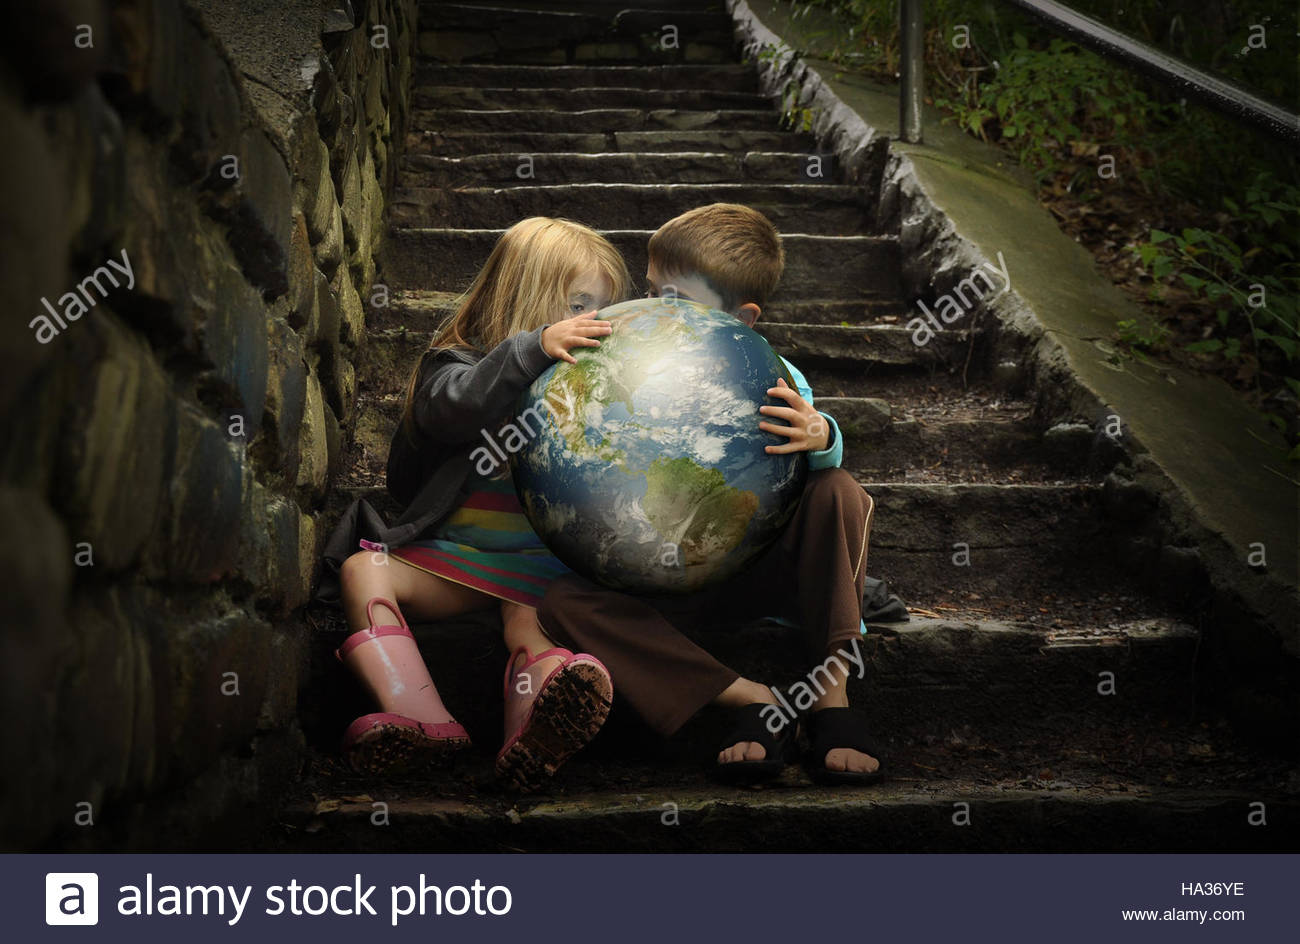 Children are holding the planet earth on wet dark stairs for a weather or season concept about the environment. - Stock Image